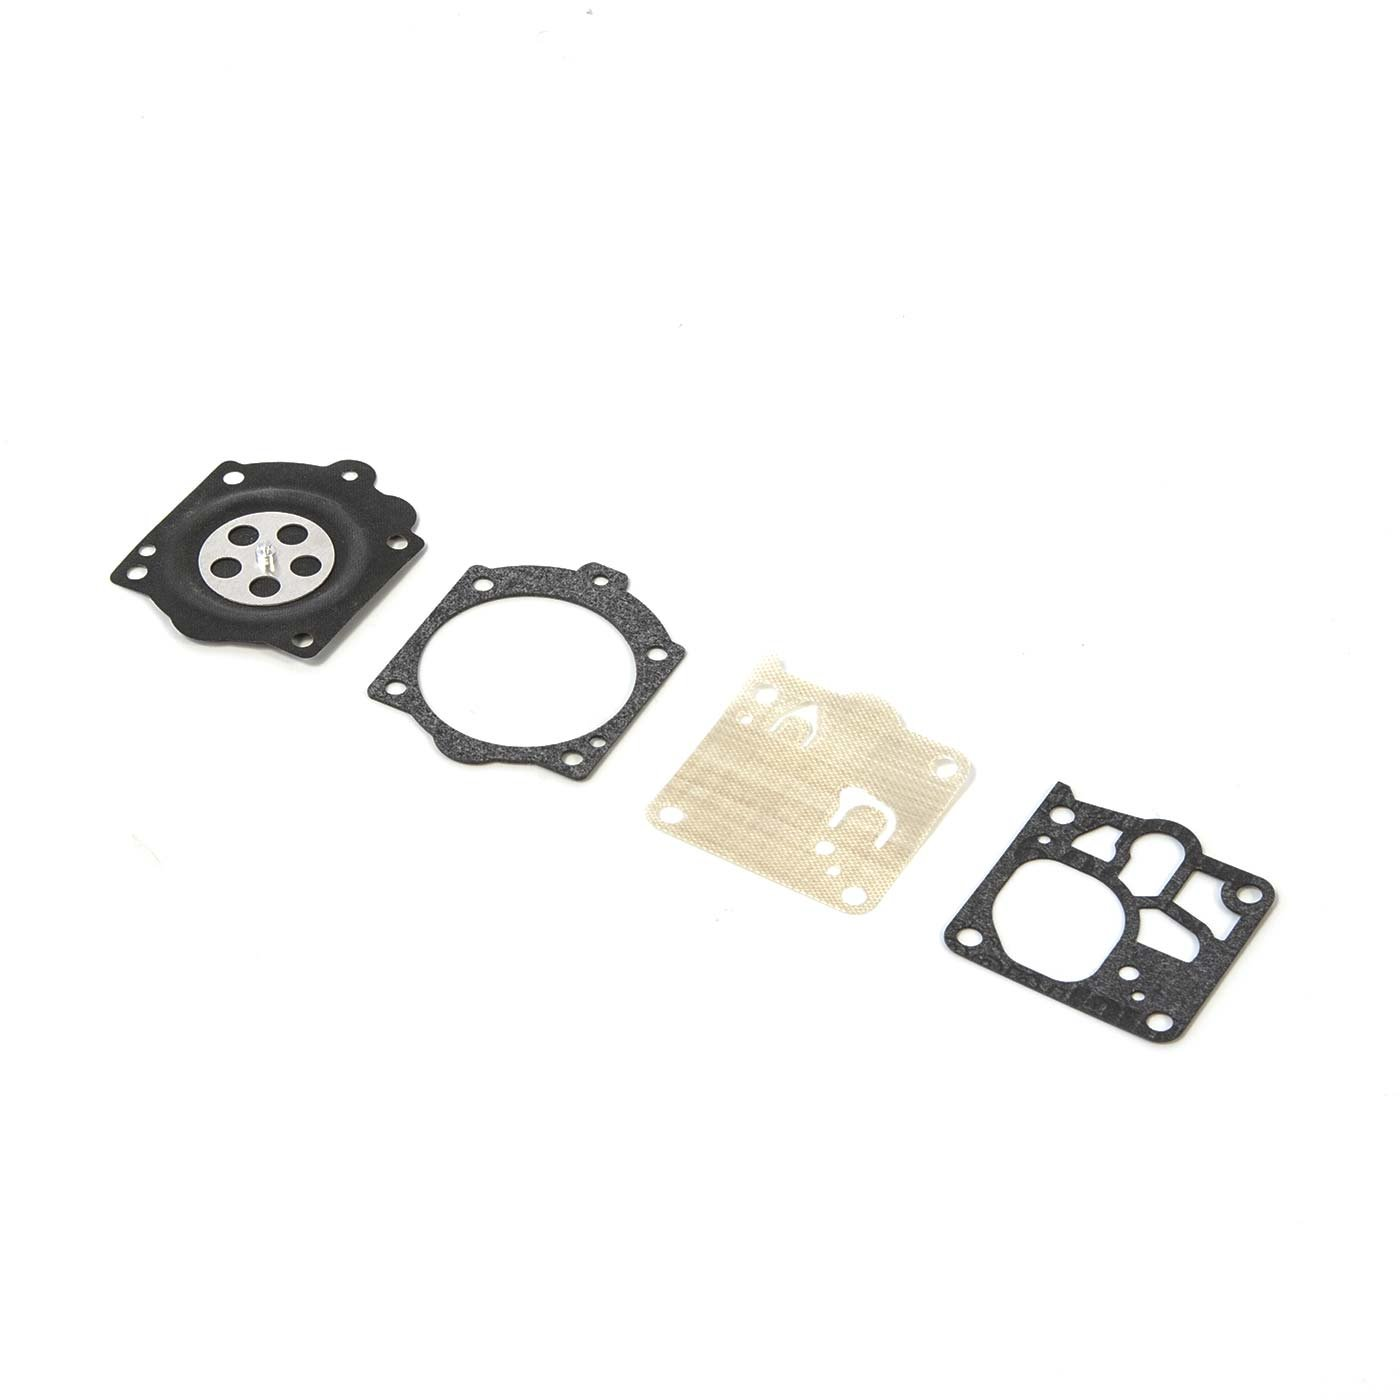 Diaphragm set for ZG 74/80B, DA85/100/100L/120/200, VM170/210